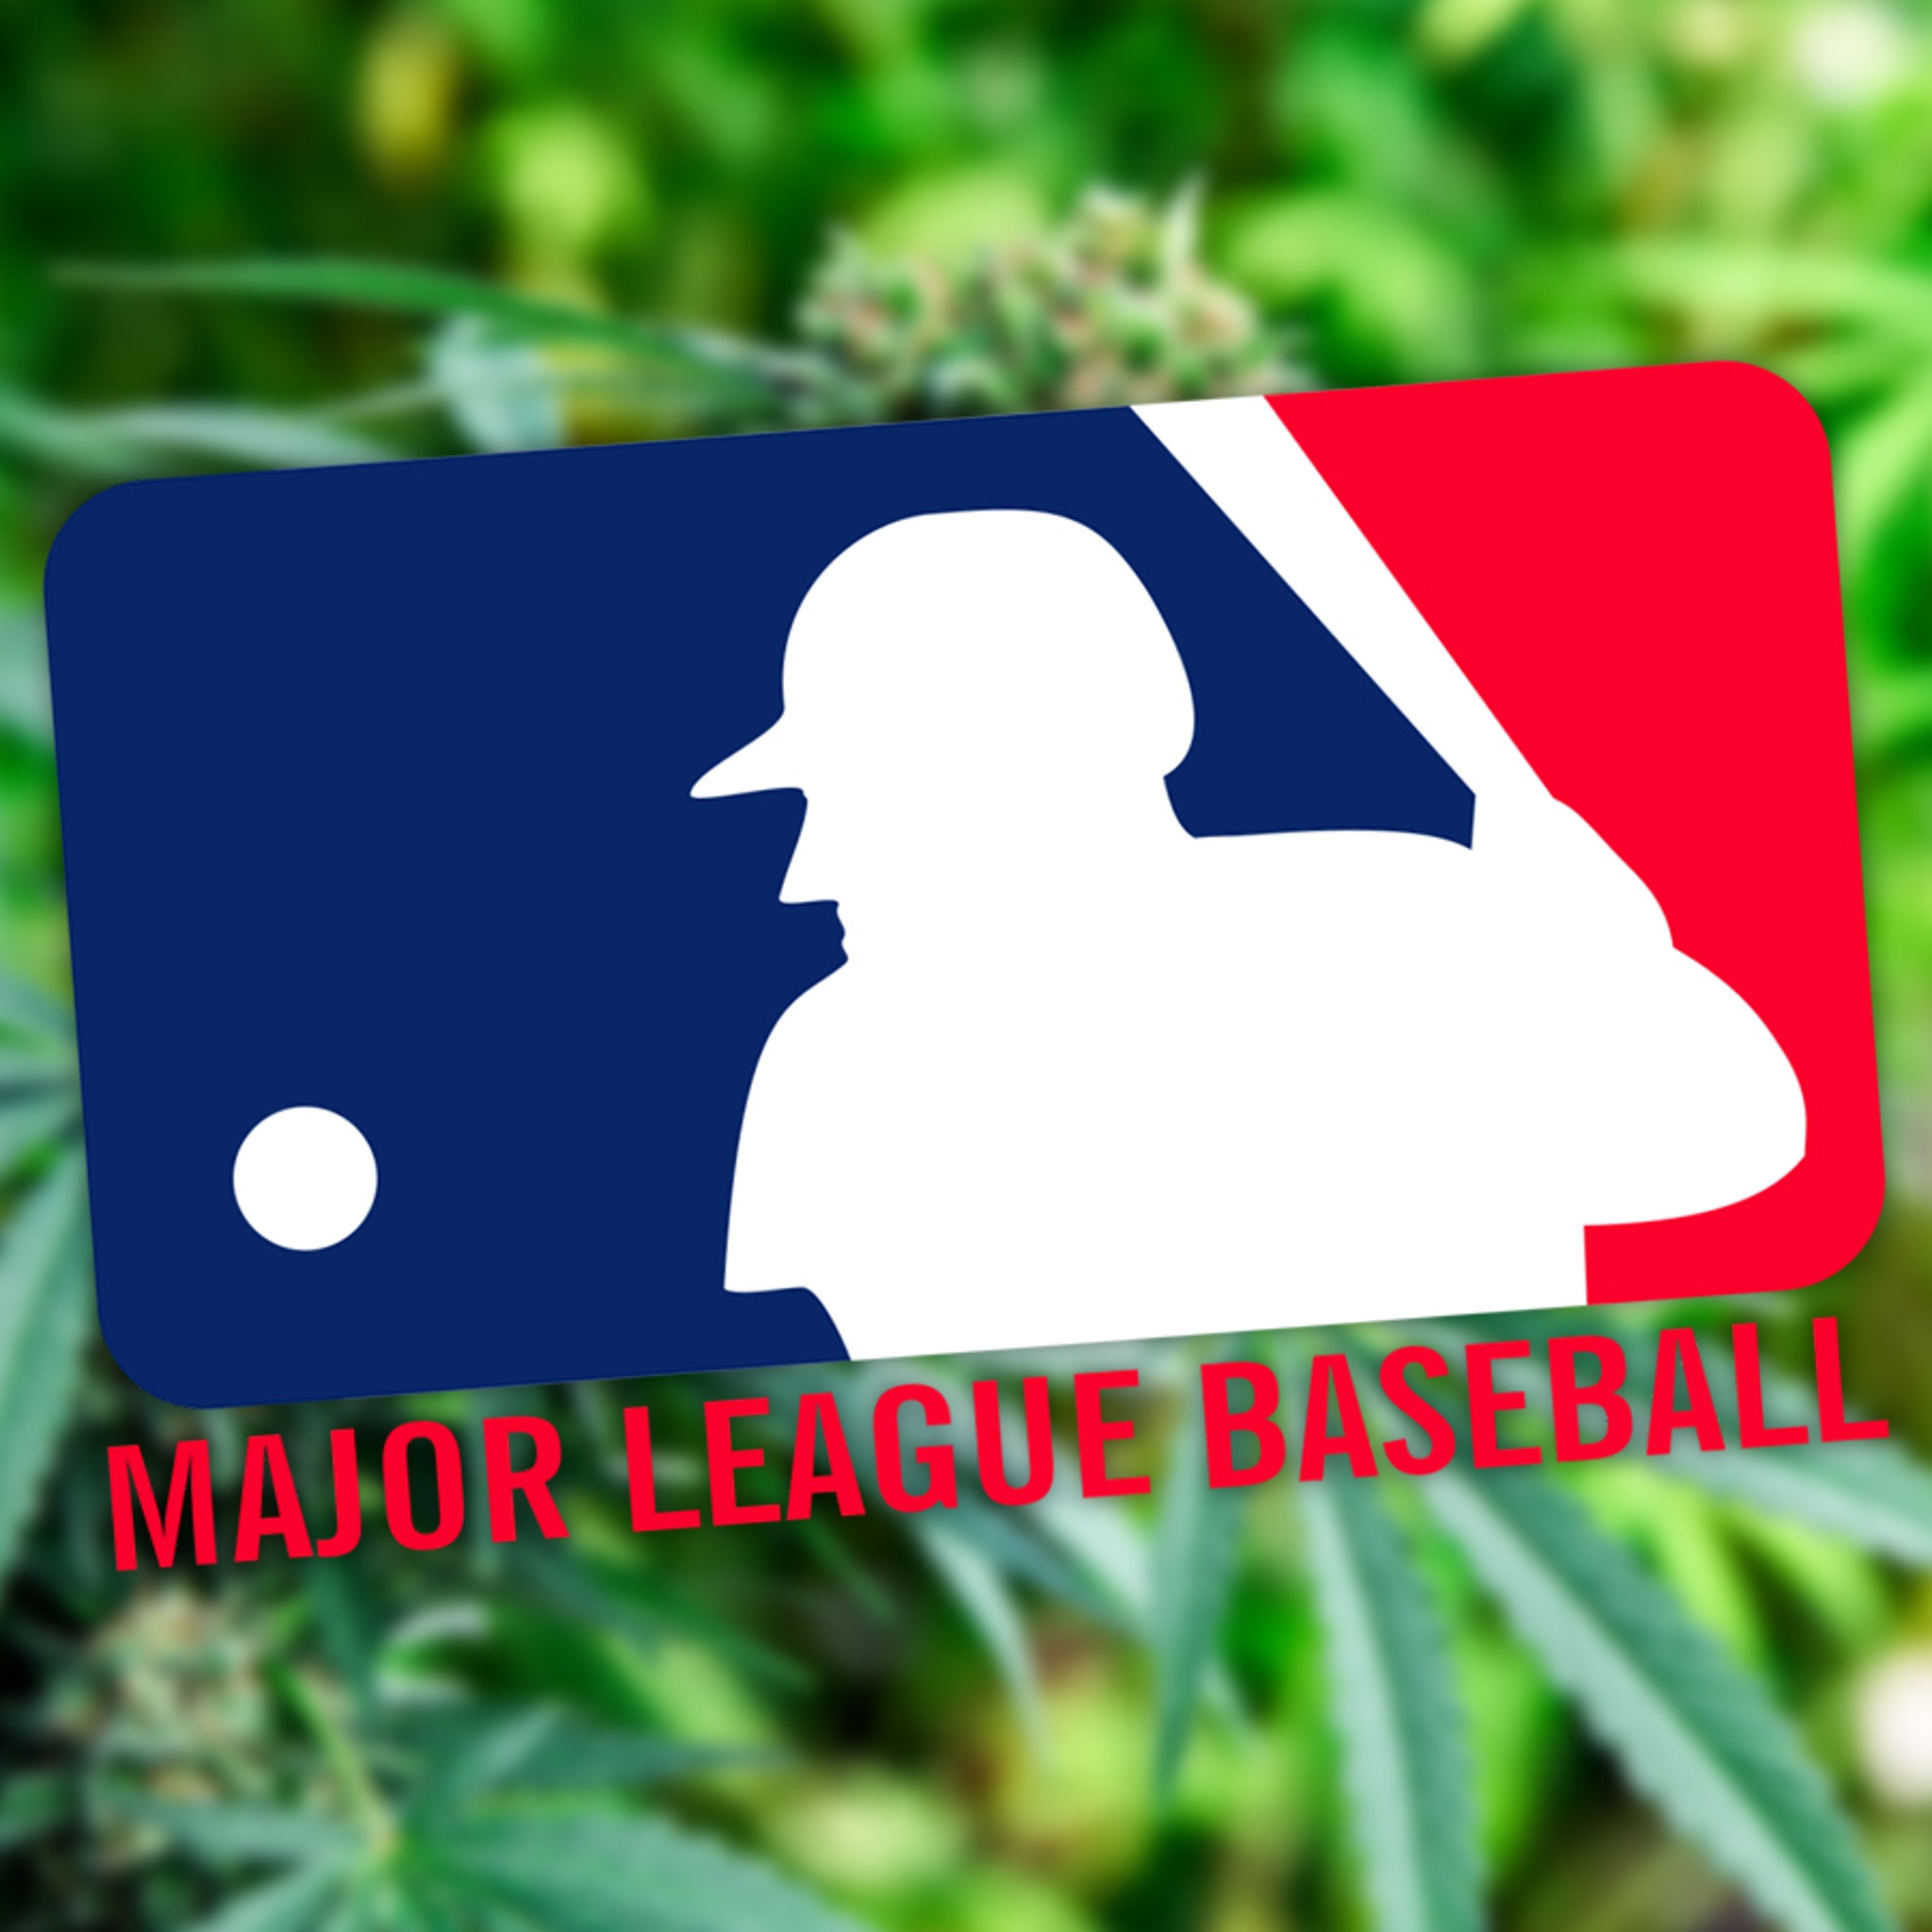 MLB Lifts Weed Ban For Minor Leaguers, Eliminates Marijuana Testing